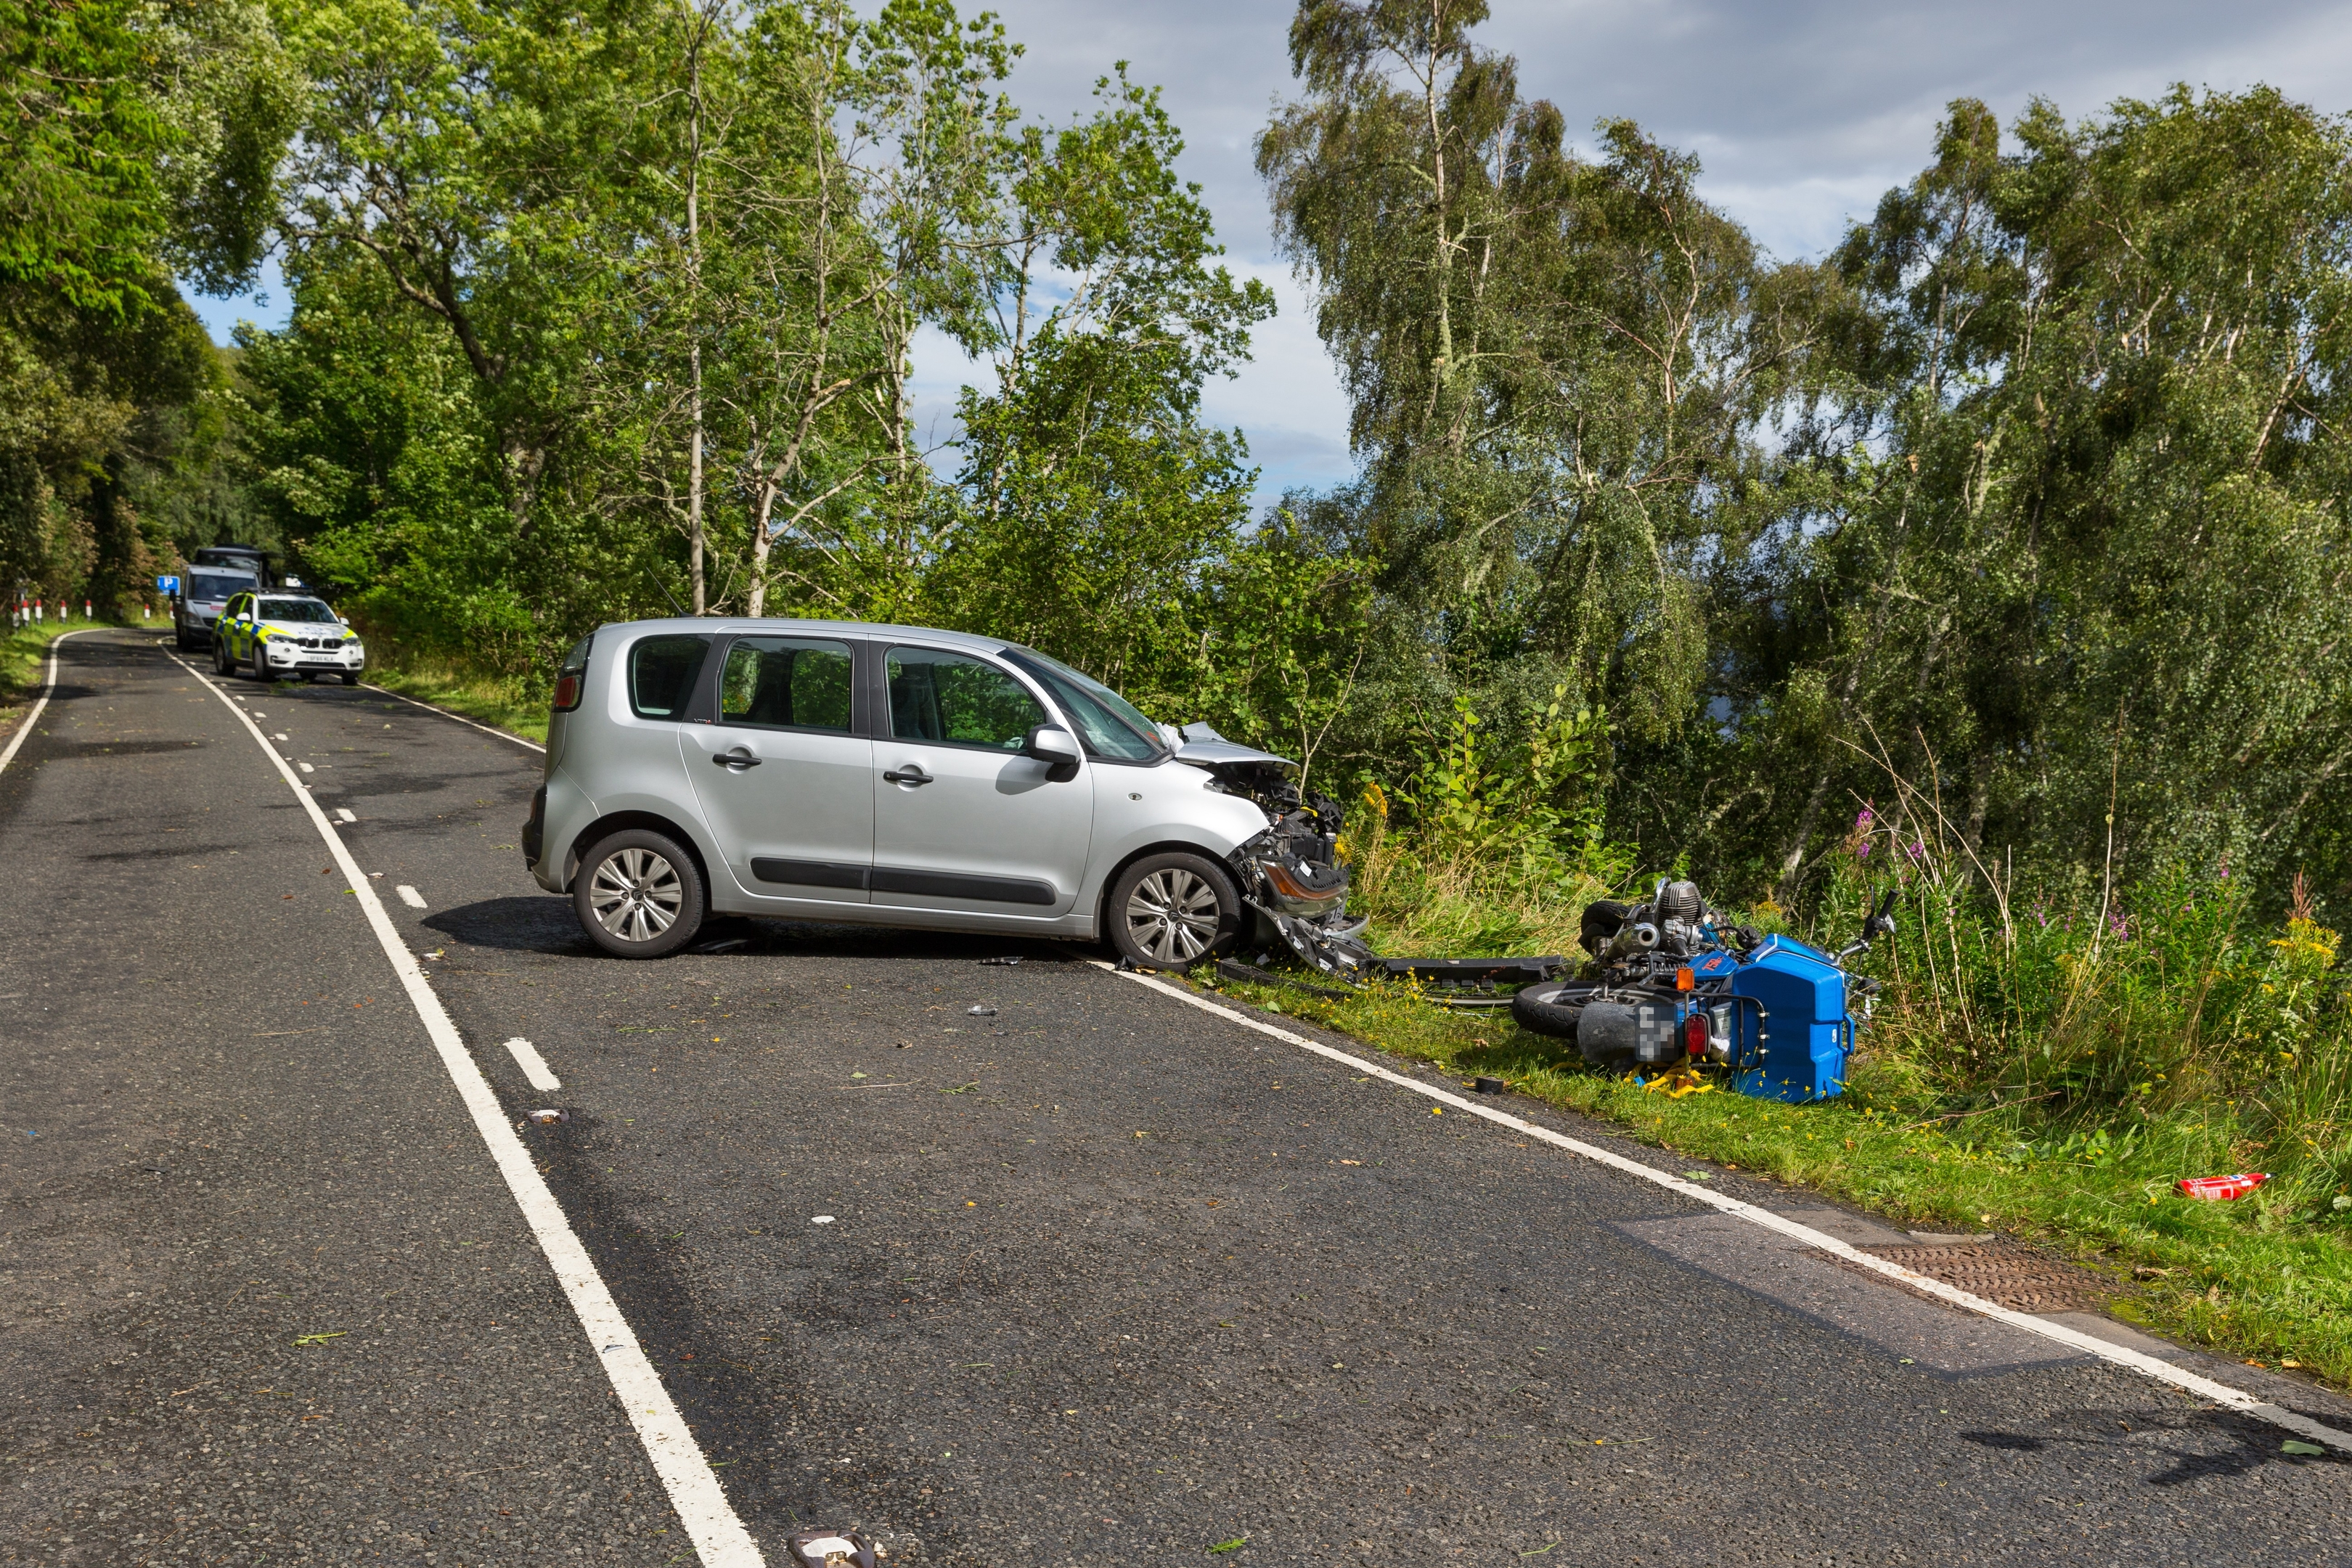 A motorcyclist was injured after an accident on the A82 south of Drumnadrochit